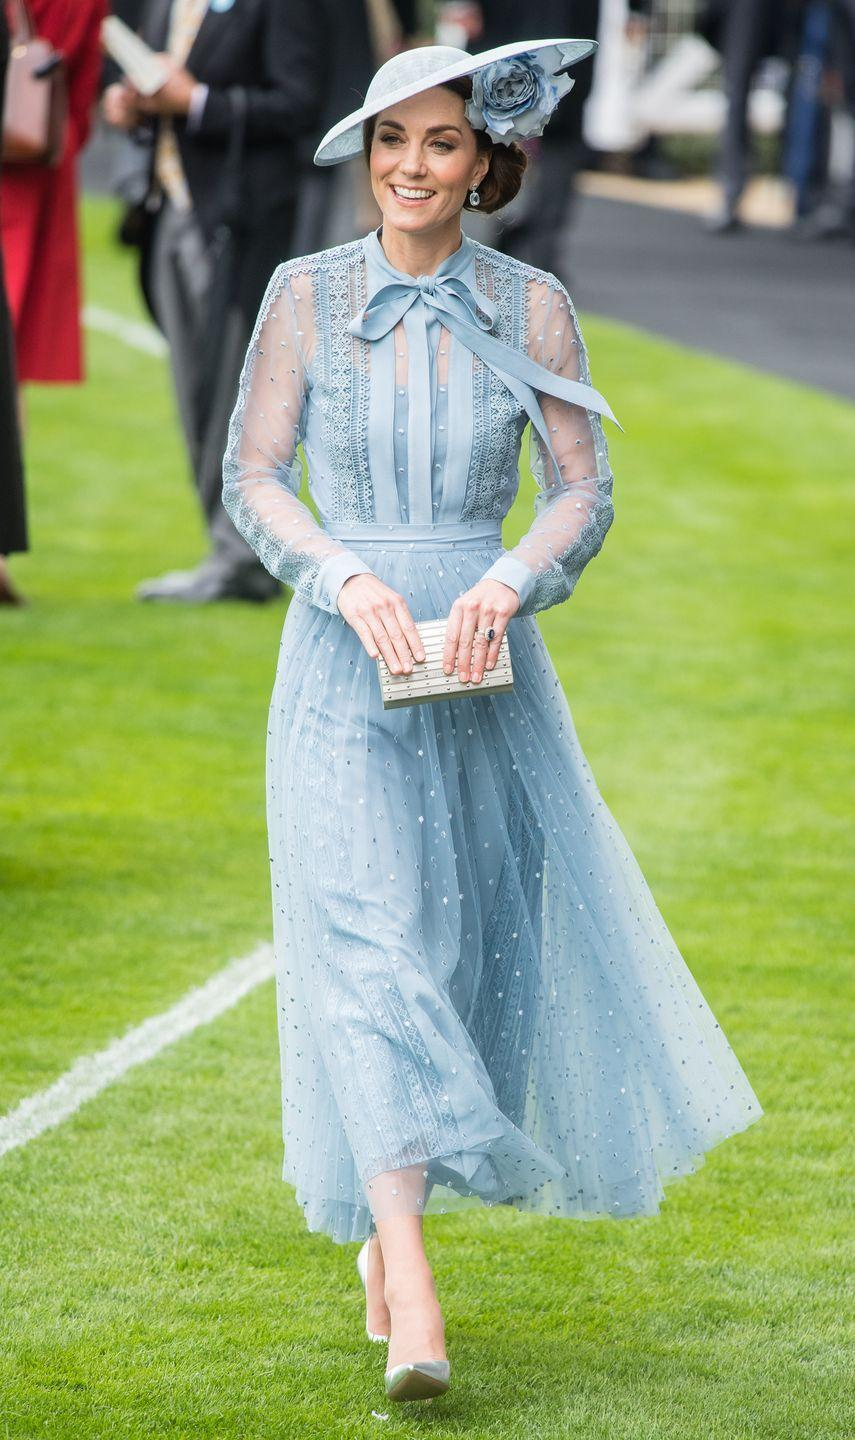 "<p><a href=""https://www.townandcountrymag.com/style/fashion-trends/a28072096/kate-middleton-elie-saab-blue-dress-royal-ascot-day-1-2019/"" rel=""nofollow noopener"" target=""_blank"" data-ylk=""slk:Kate chose an Elie Saab dress and matching pale blue hat for the first day of Royal Ascot"" class=""link rapid-noclick-resp"">Kate chose an Elie Saab dress and matching pale blue hat for the first day of Royal Ascot</a>. Silver heels and a metallic clutch finished off the look.</p>"